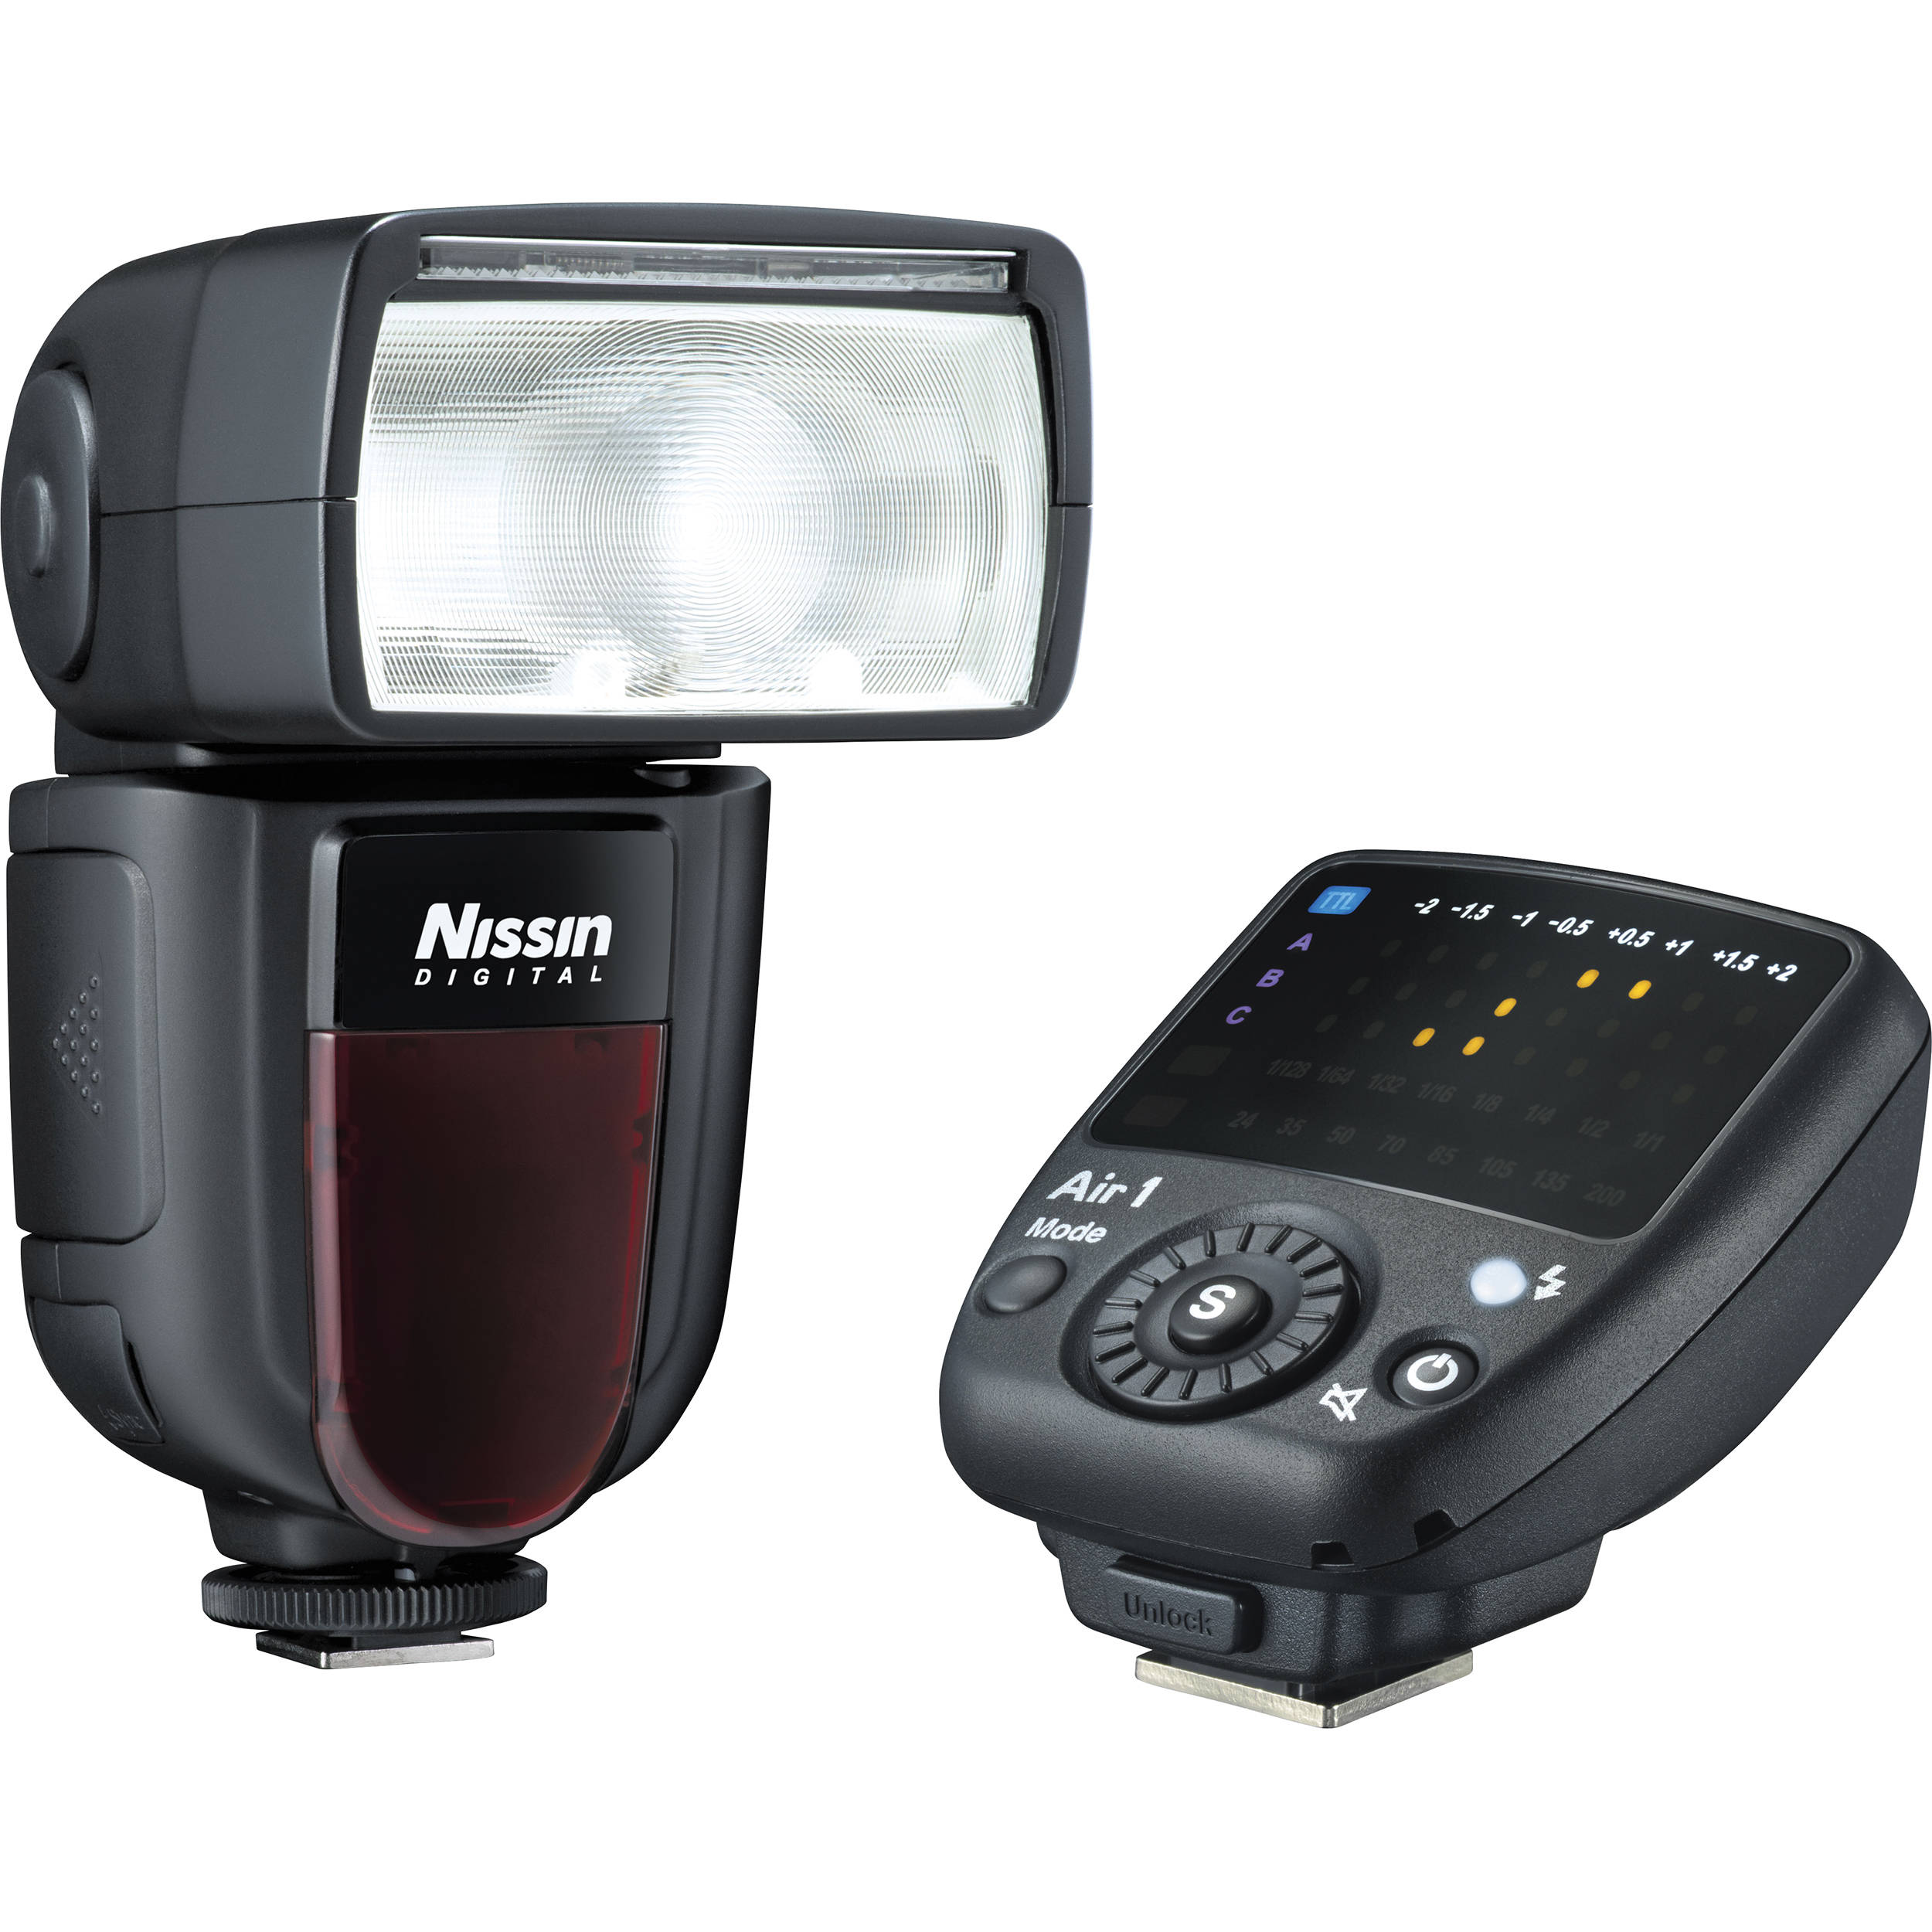 Nissin Di700a Flash Kit With Air 1 Commander For Micro